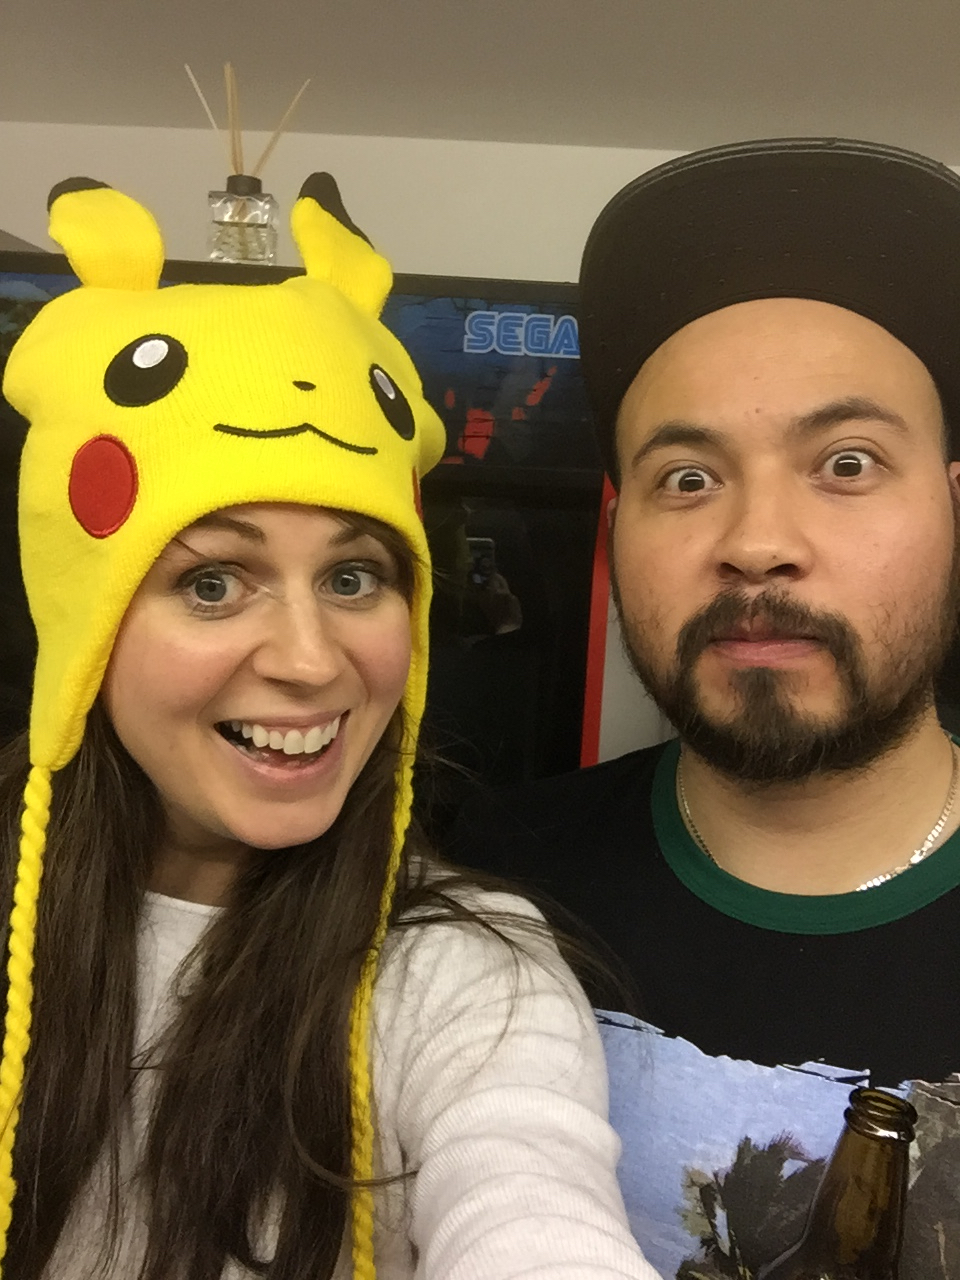 You know the voices, now know the faces! (see I did let her wear the Pokemon hat!)